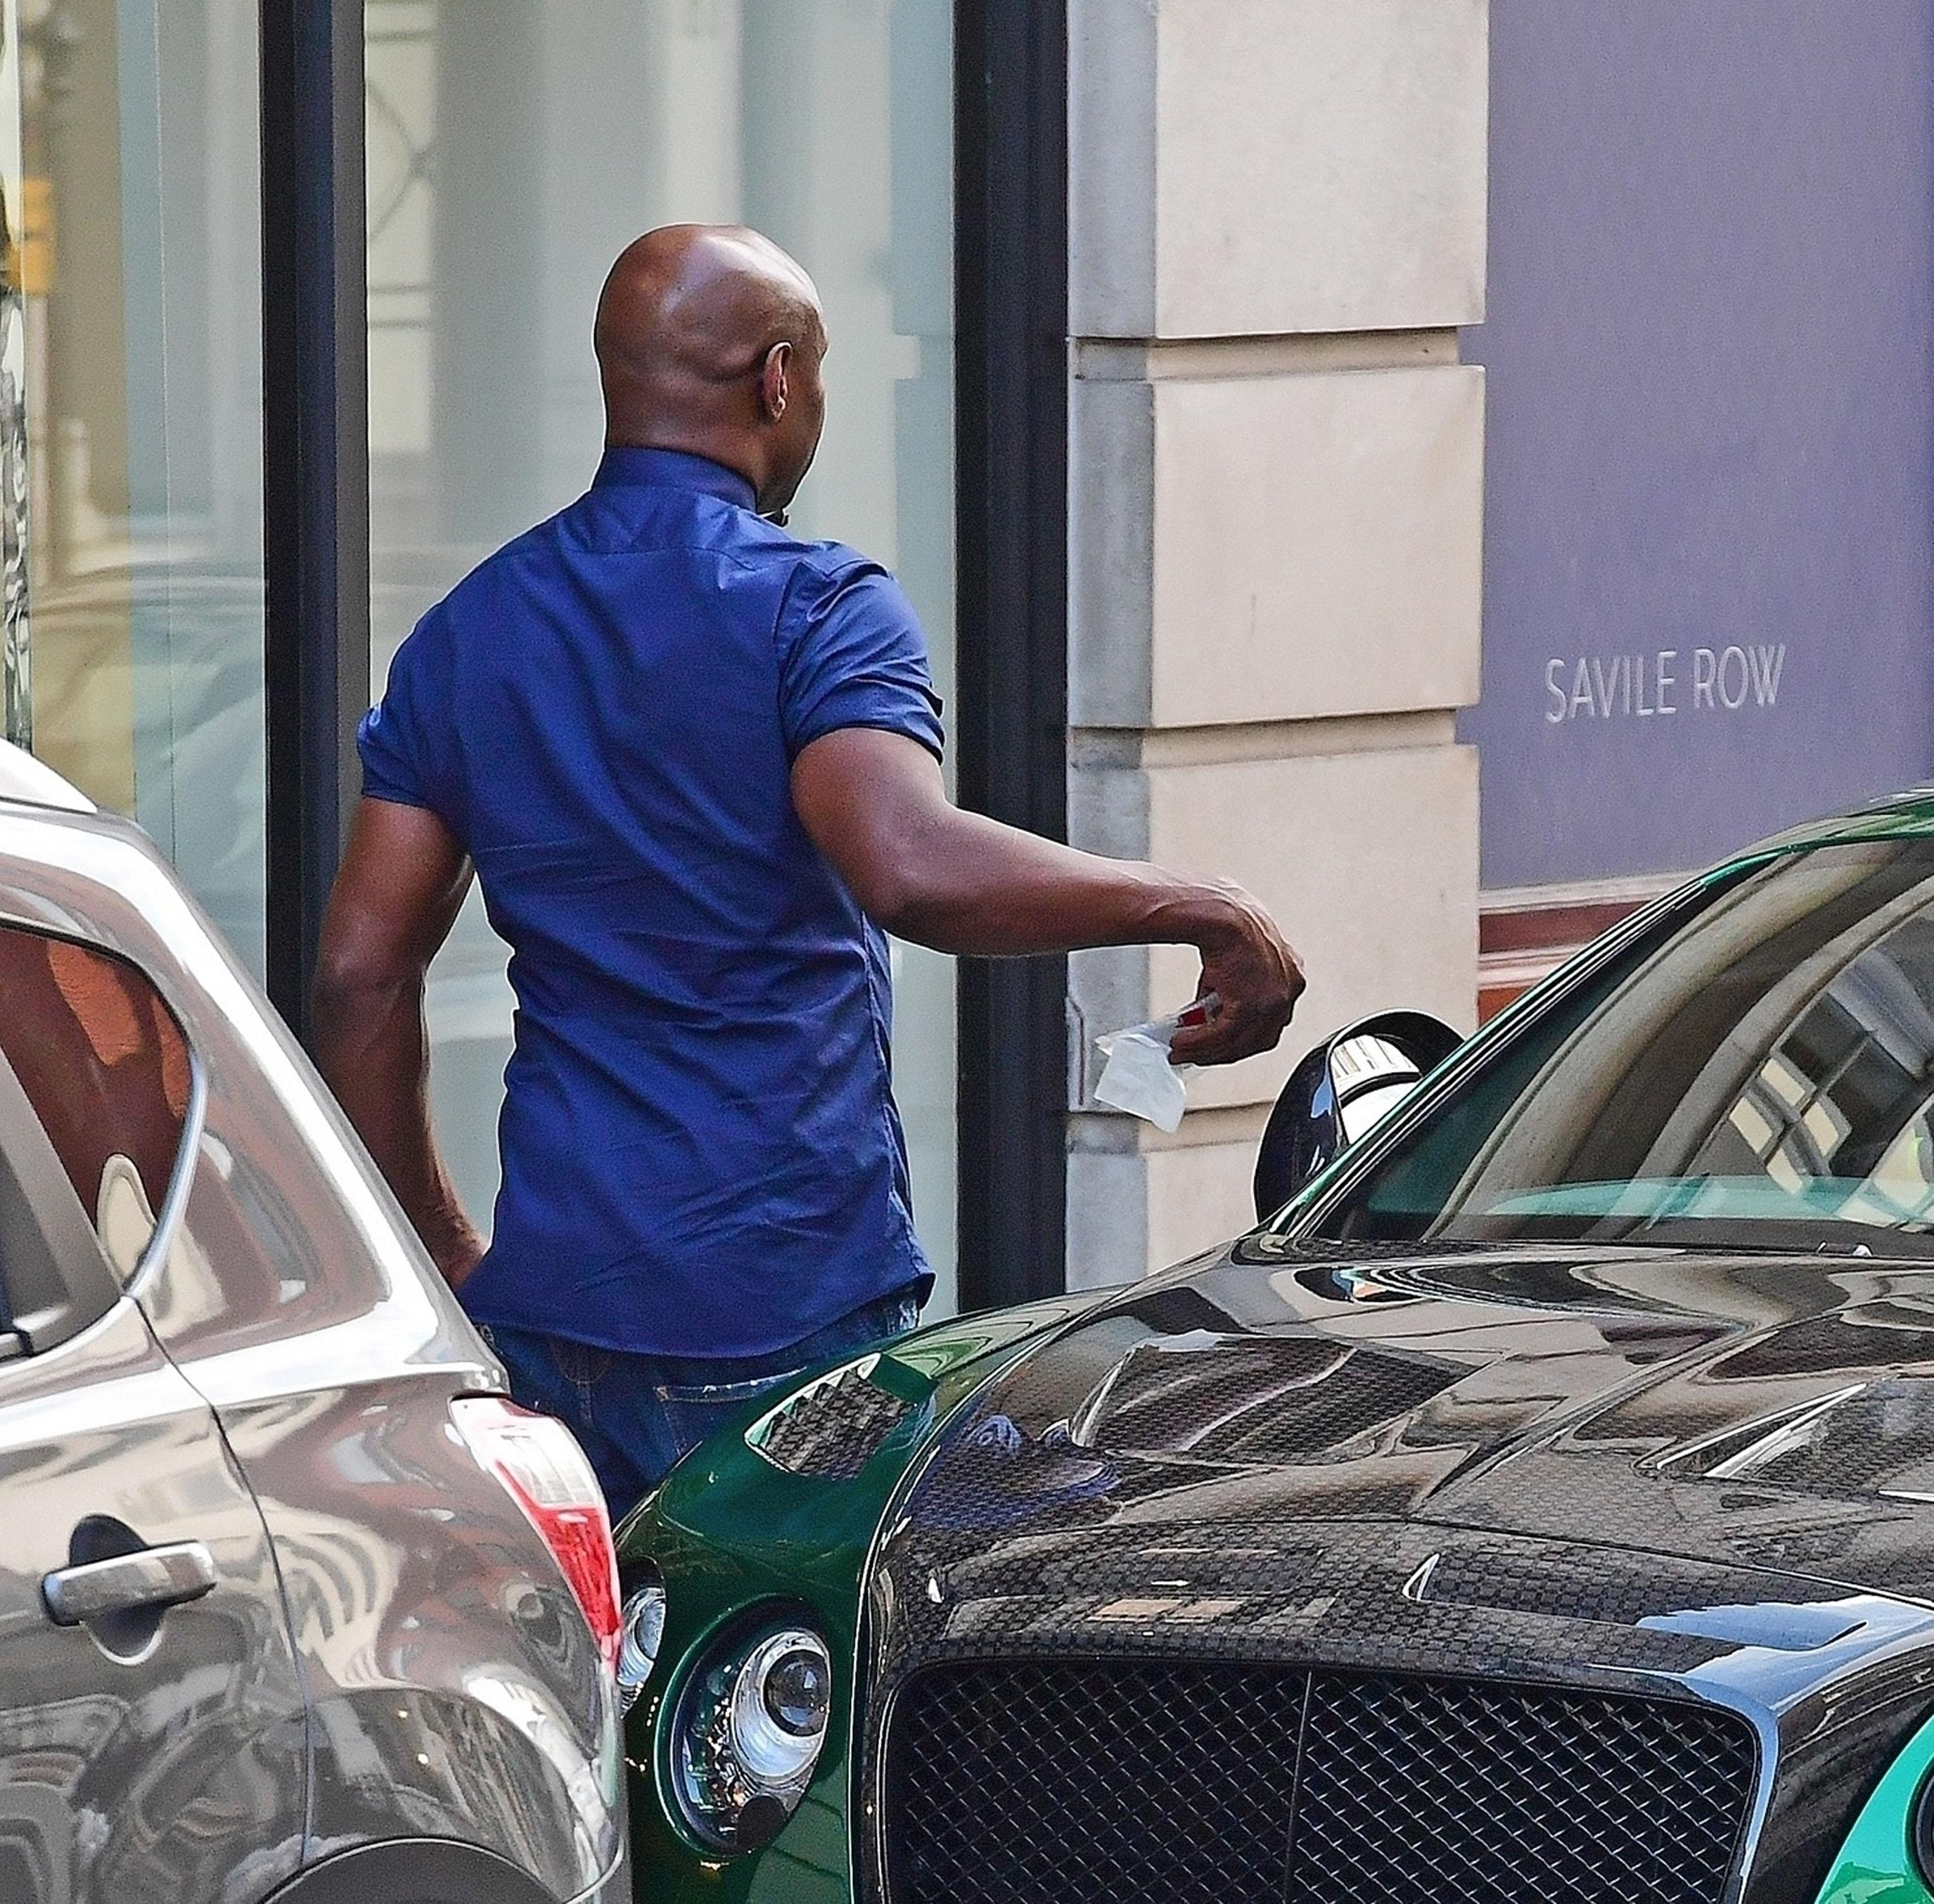 Chris Eubank 'pulled out his own parking ticket and put it on his windscreen'